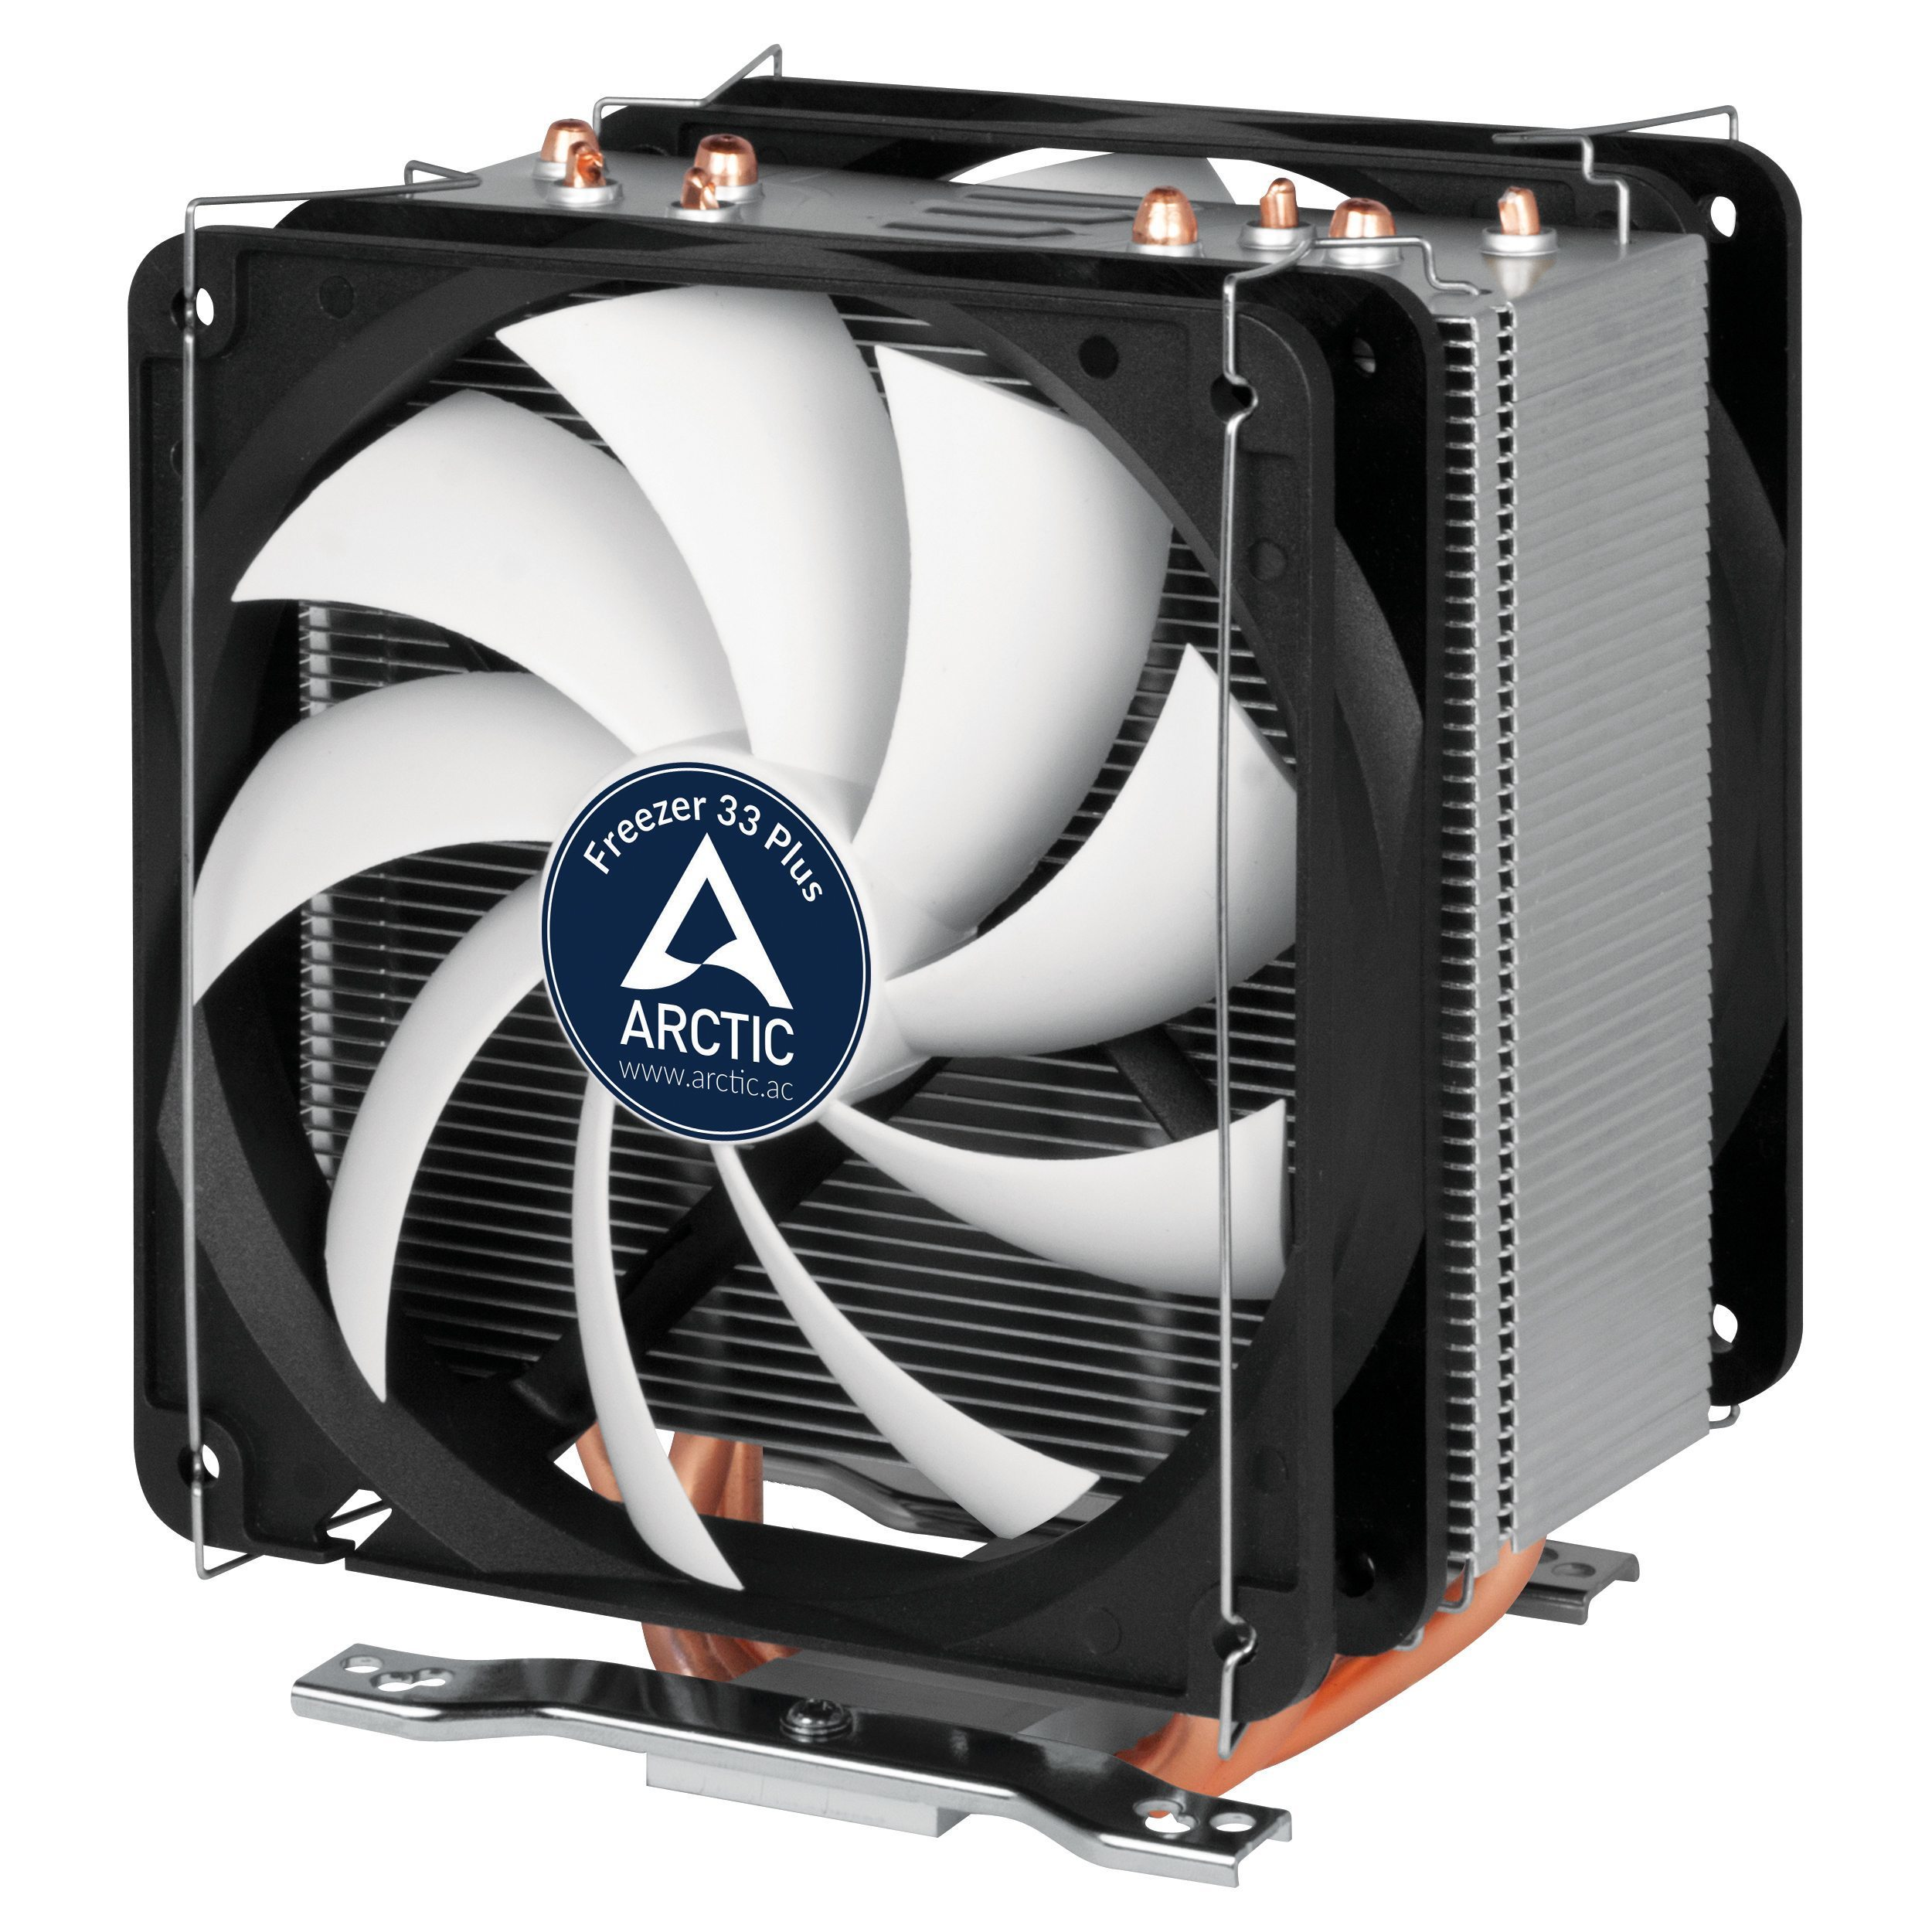 Freezer 33 PLUS - 2 fans - AM4/2011/1150/1151/1155/1156